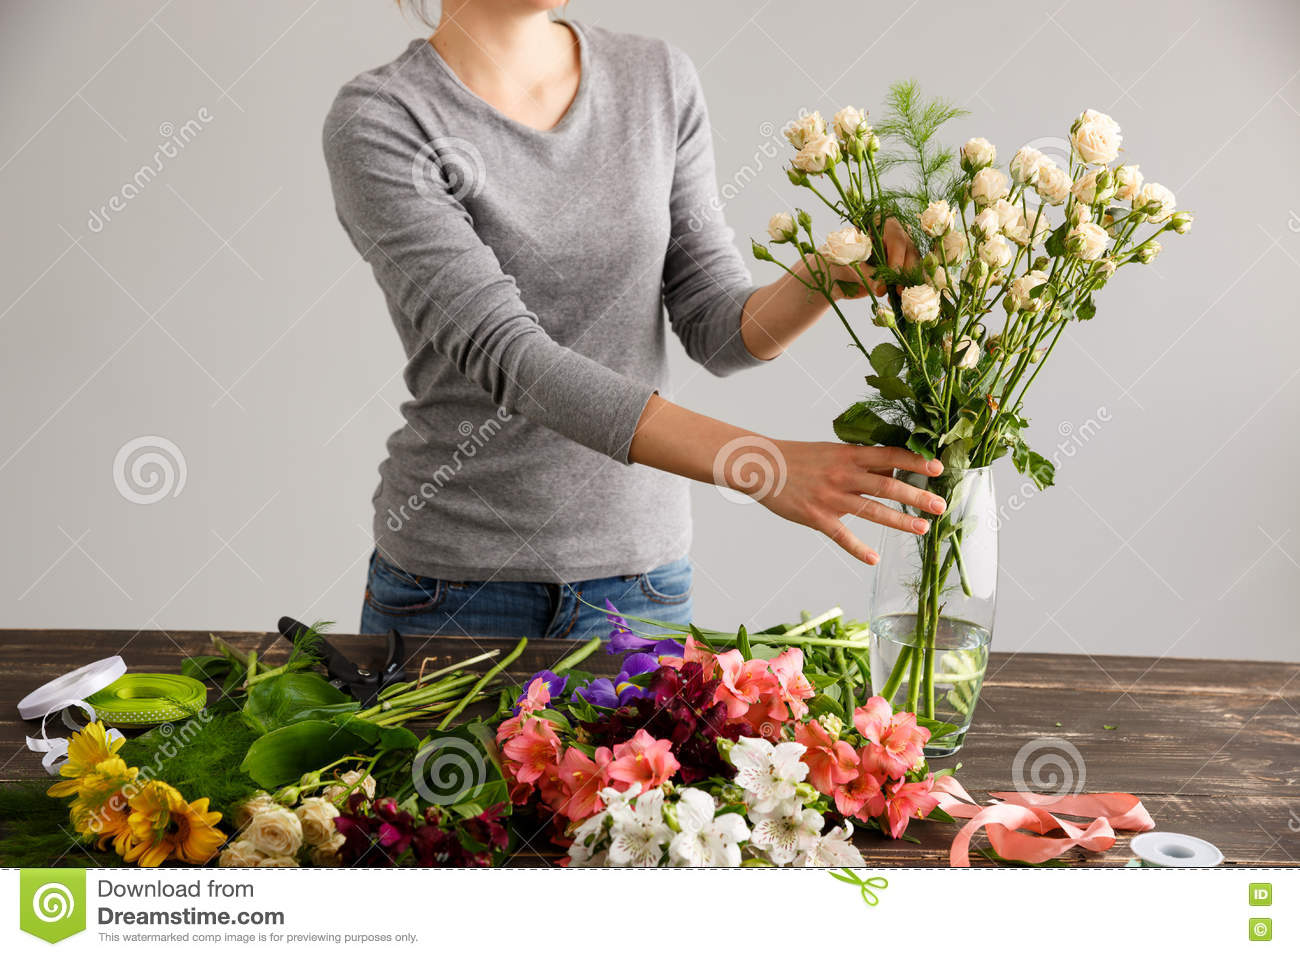 Girl in gray blouse and jeans make a bouquet over gray background putting roses in vase flowers and vase on wood table. & Girl Make Bouquet Over Gray Background Putting Flowers In Vase ...